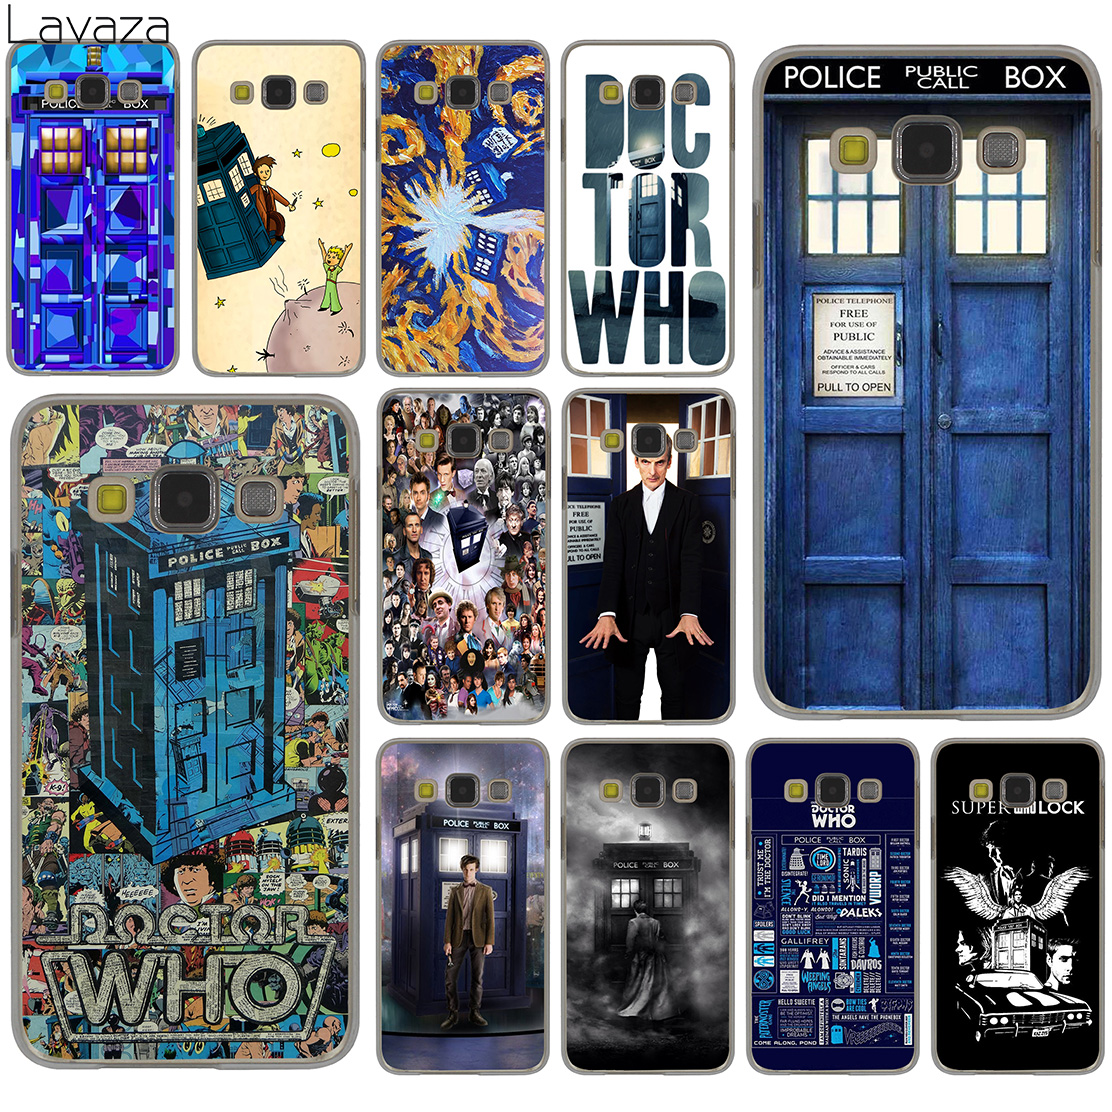 Fitted Cases Lvhecn Phone Case Cover For Samsung Galaxy S5 S6 S7 S8 S9 S10 Edge Plus S10e Lite Note 5 8 9 Doctor Who Tardis Police Phone Box